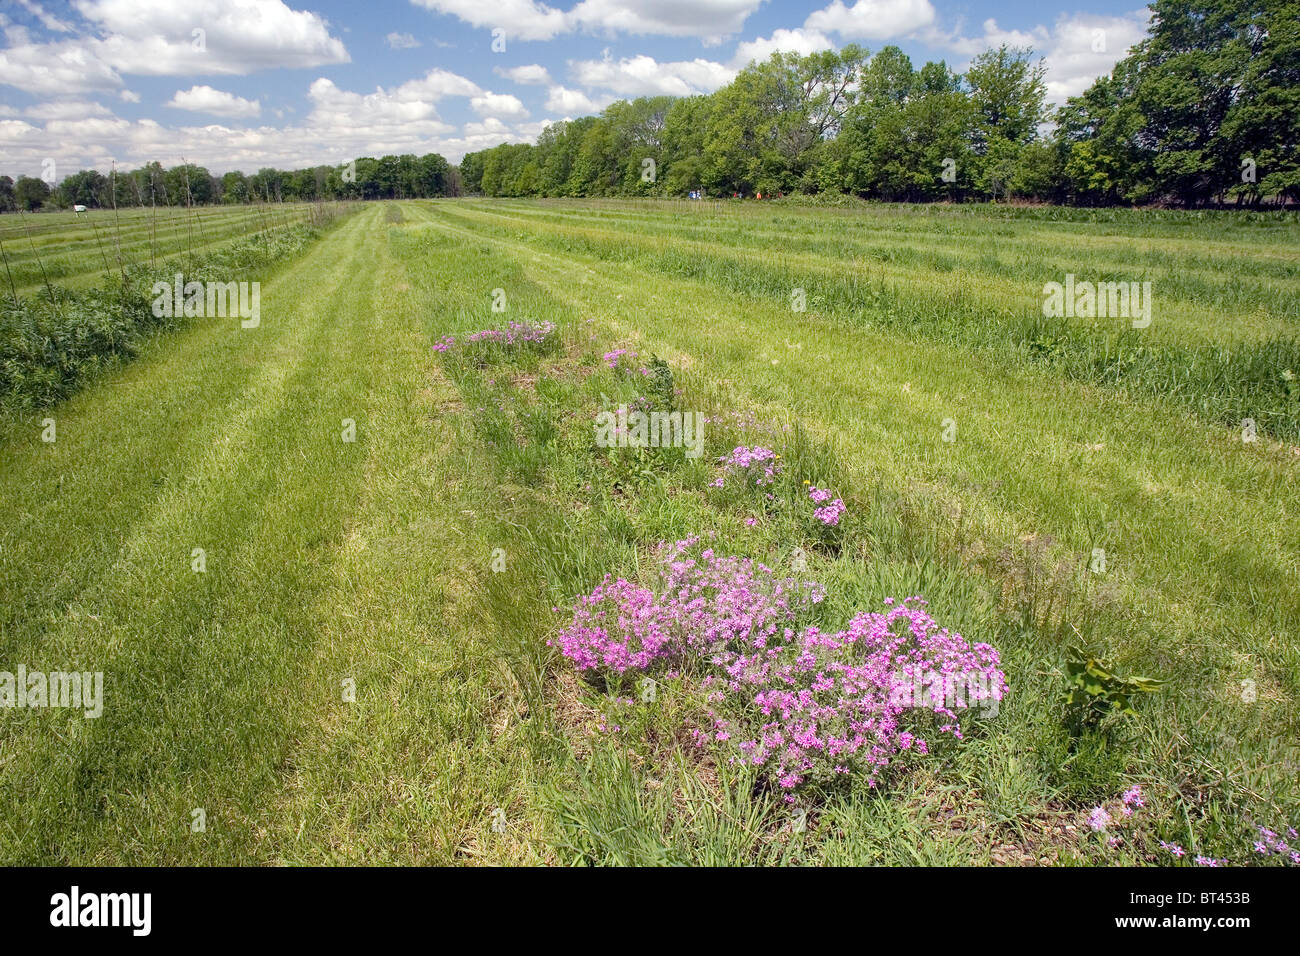 Native seed garden, Midewin National Tallgrass Prairie, Illinois, United States - Stock Image